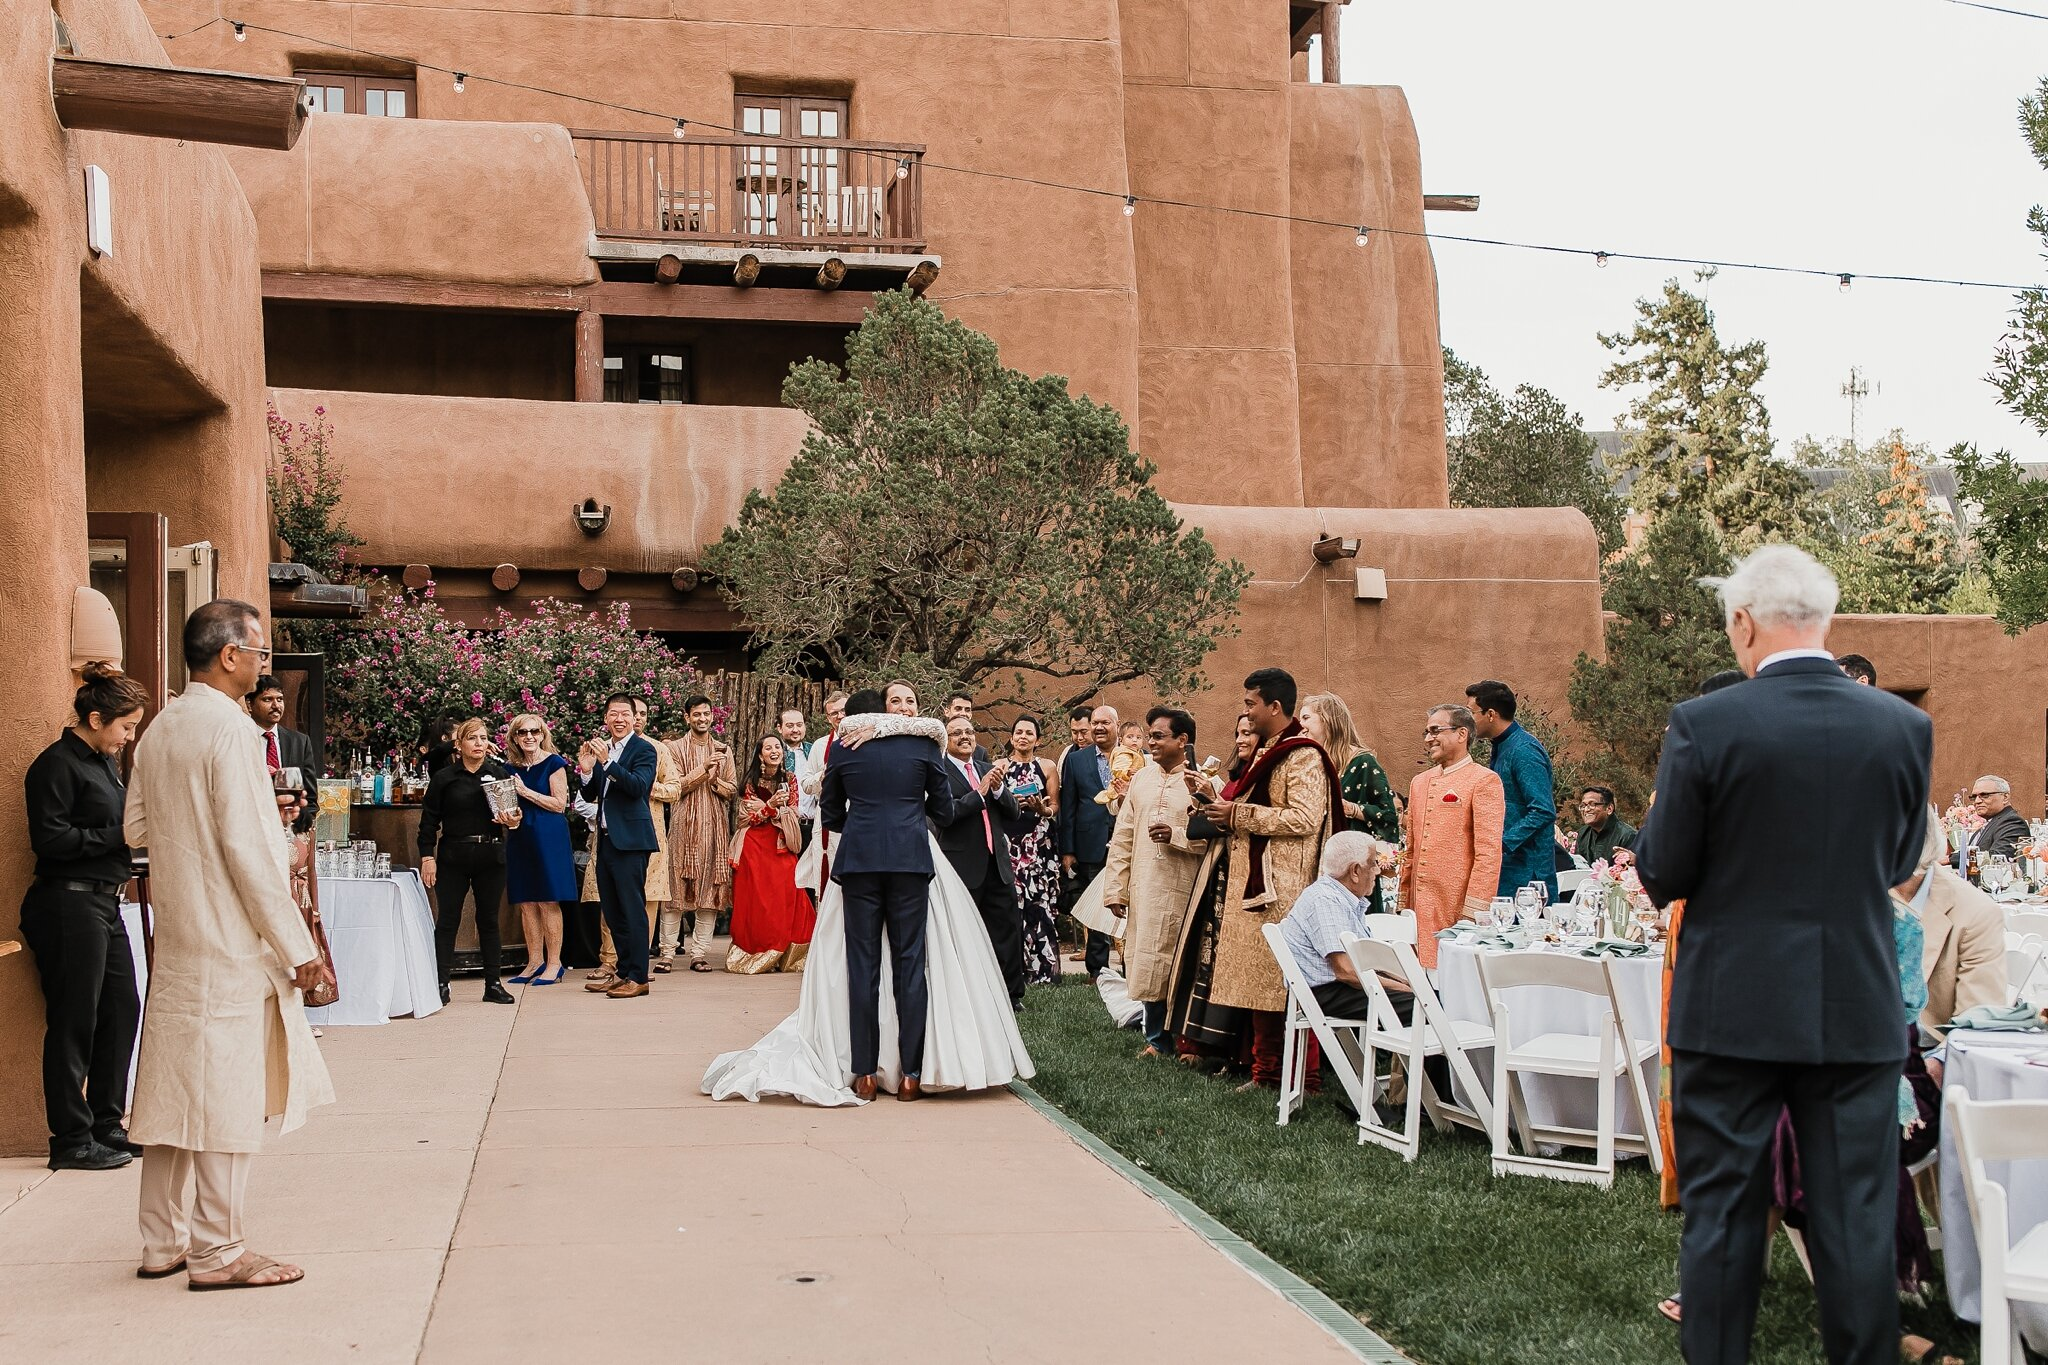 Alicia+lucia+photography+-+albuquerque+wedding+photographer+-+santa+fe+wedding+photography+-+new+mexico+wedding+photographer+-+new+mexico+wedding+-+hindu+wedding+-+catholic+wedding+-+multicultural+wedding+-+santa+fe+wedding_0122.jpg